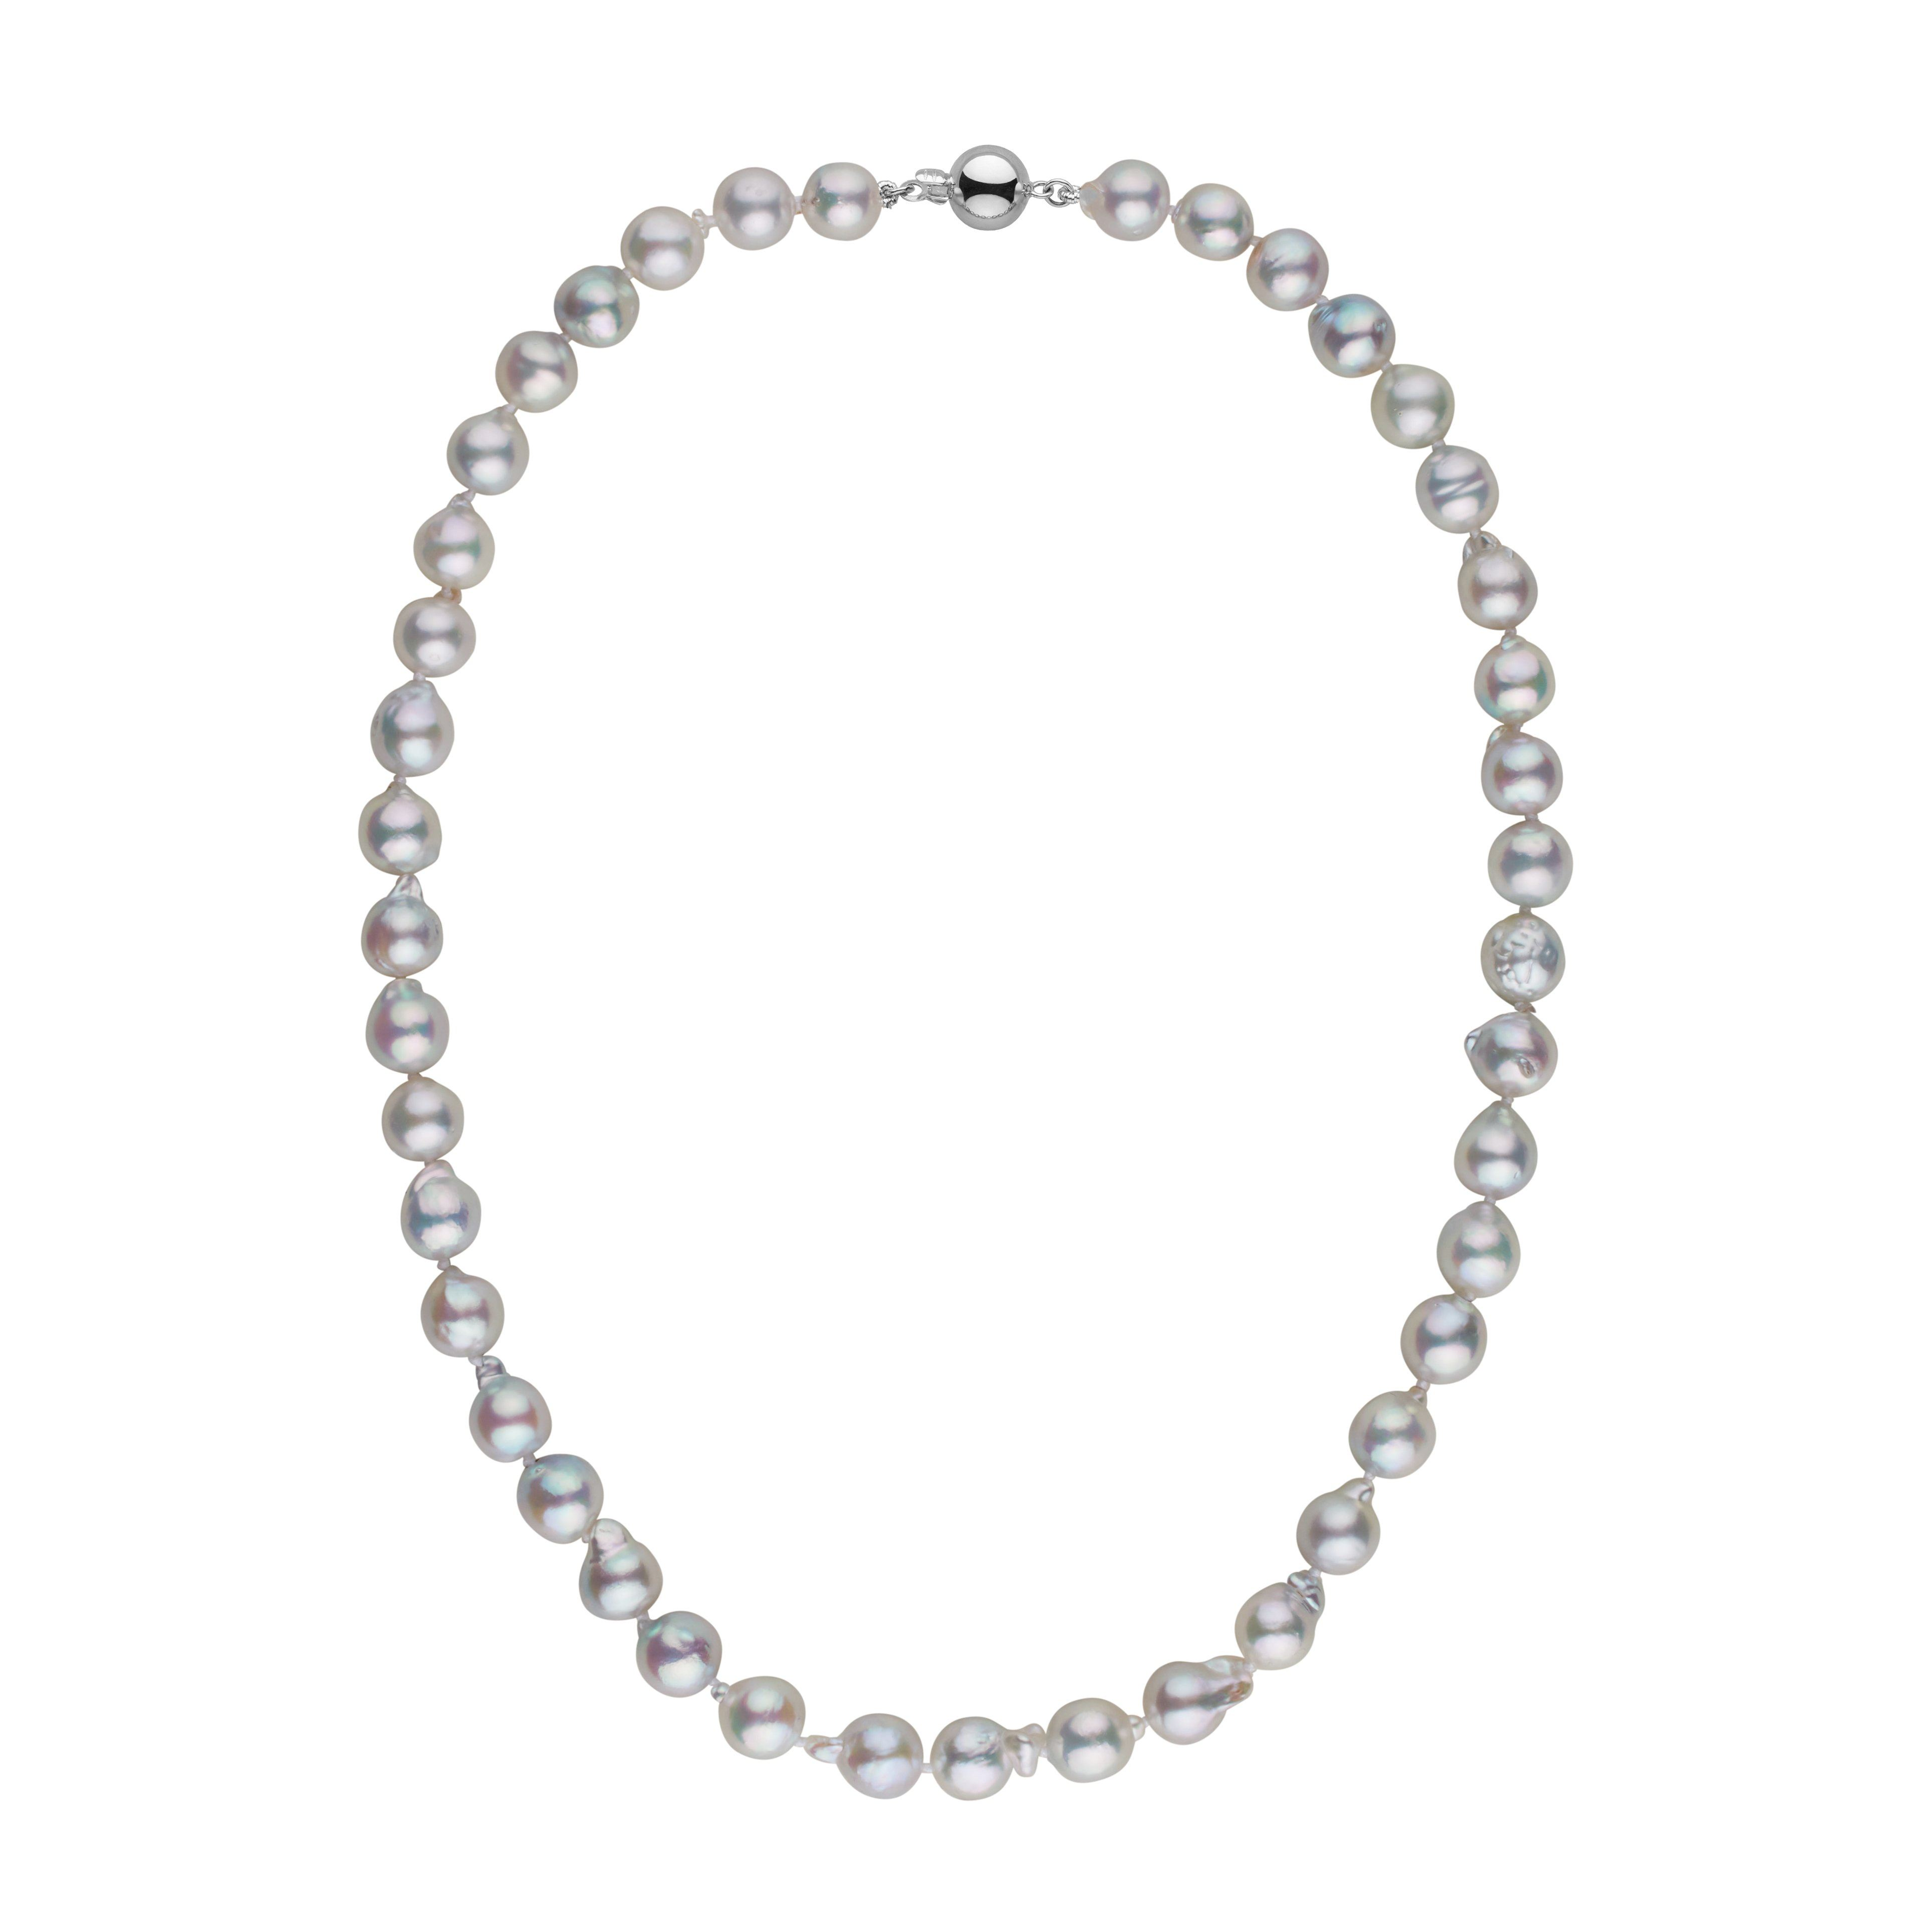 8.0-8.5 mm 18 Inch Silver-Blue Akoya Baroque Pearl Necklace